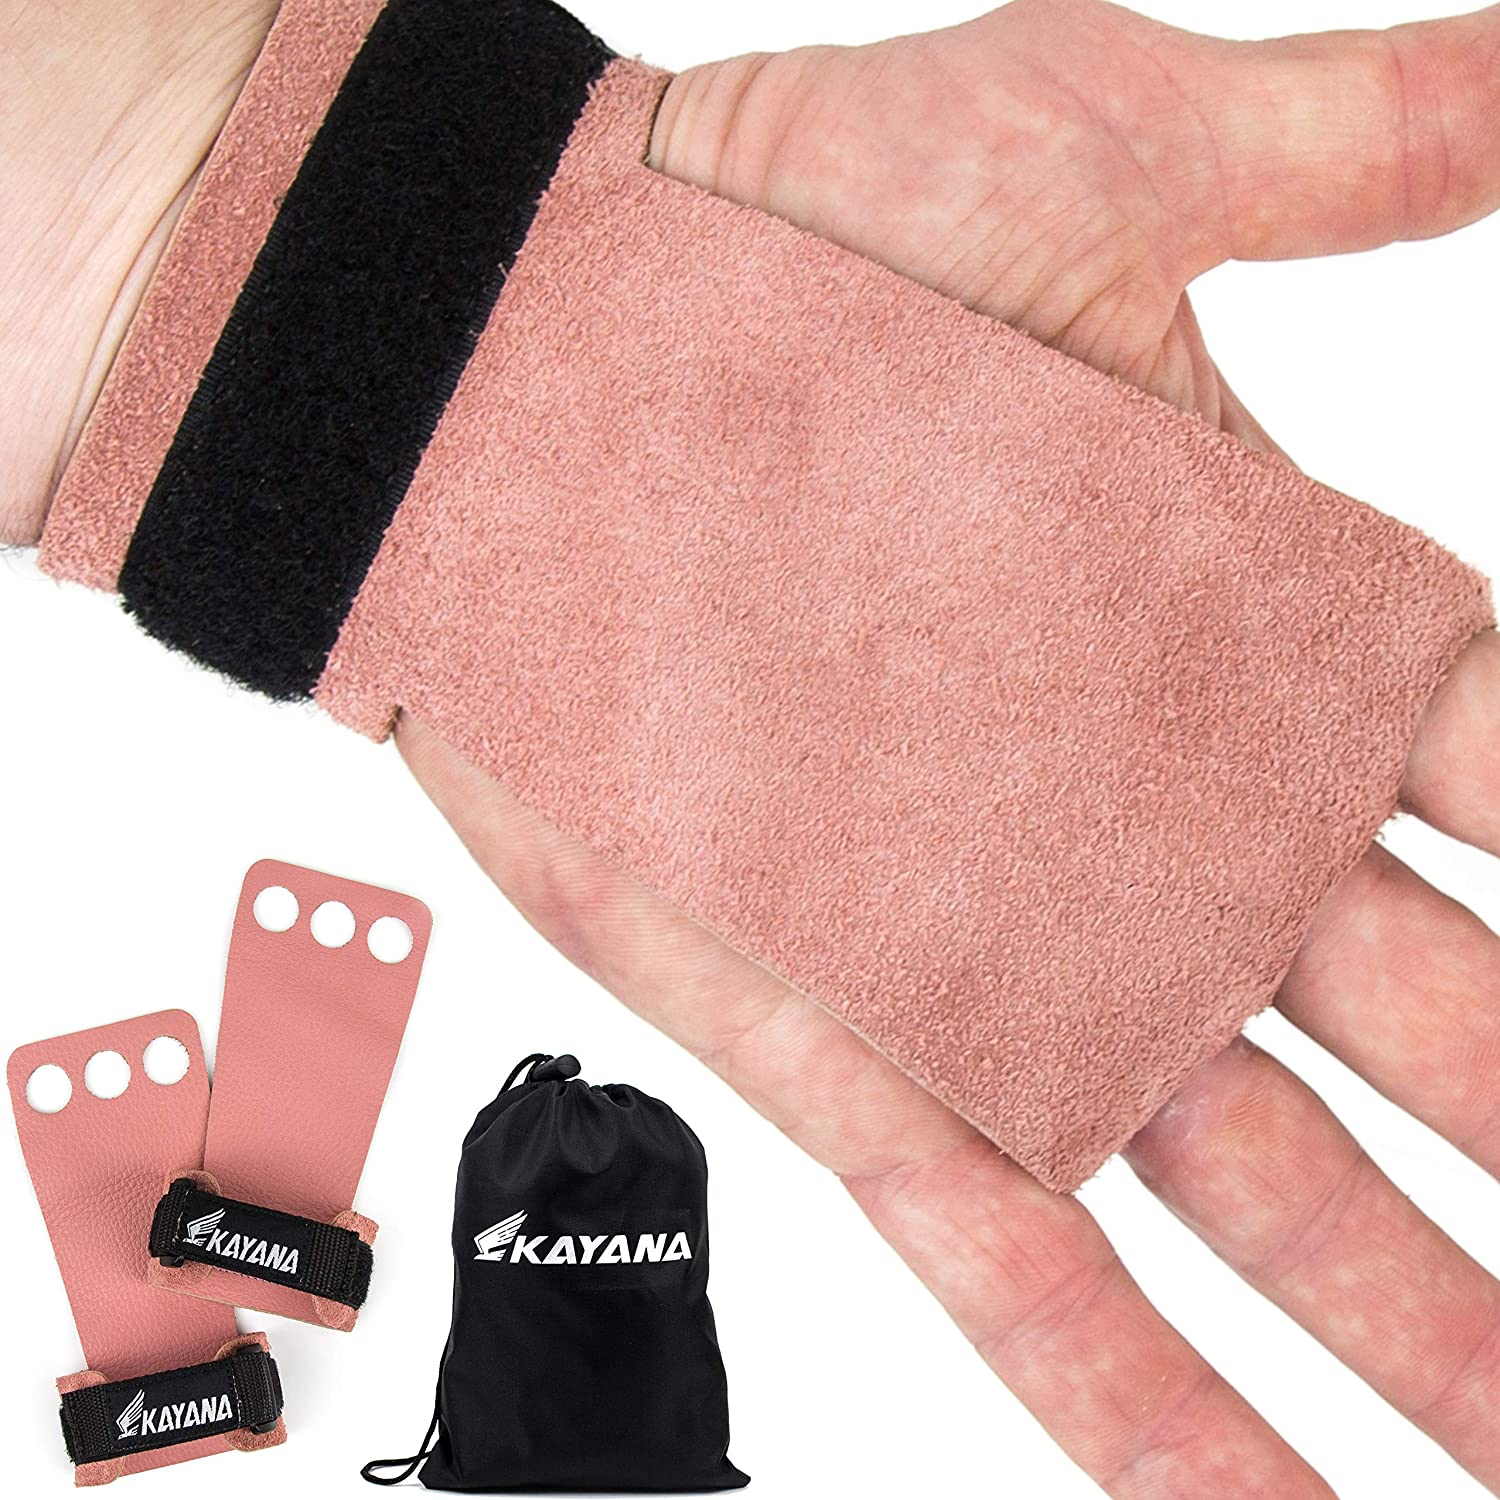 KAYANA 3 Challenge the lowest price of Max 51% OFF Japan Hole Leather Gymnastics Hand an - Palm Grips Protection